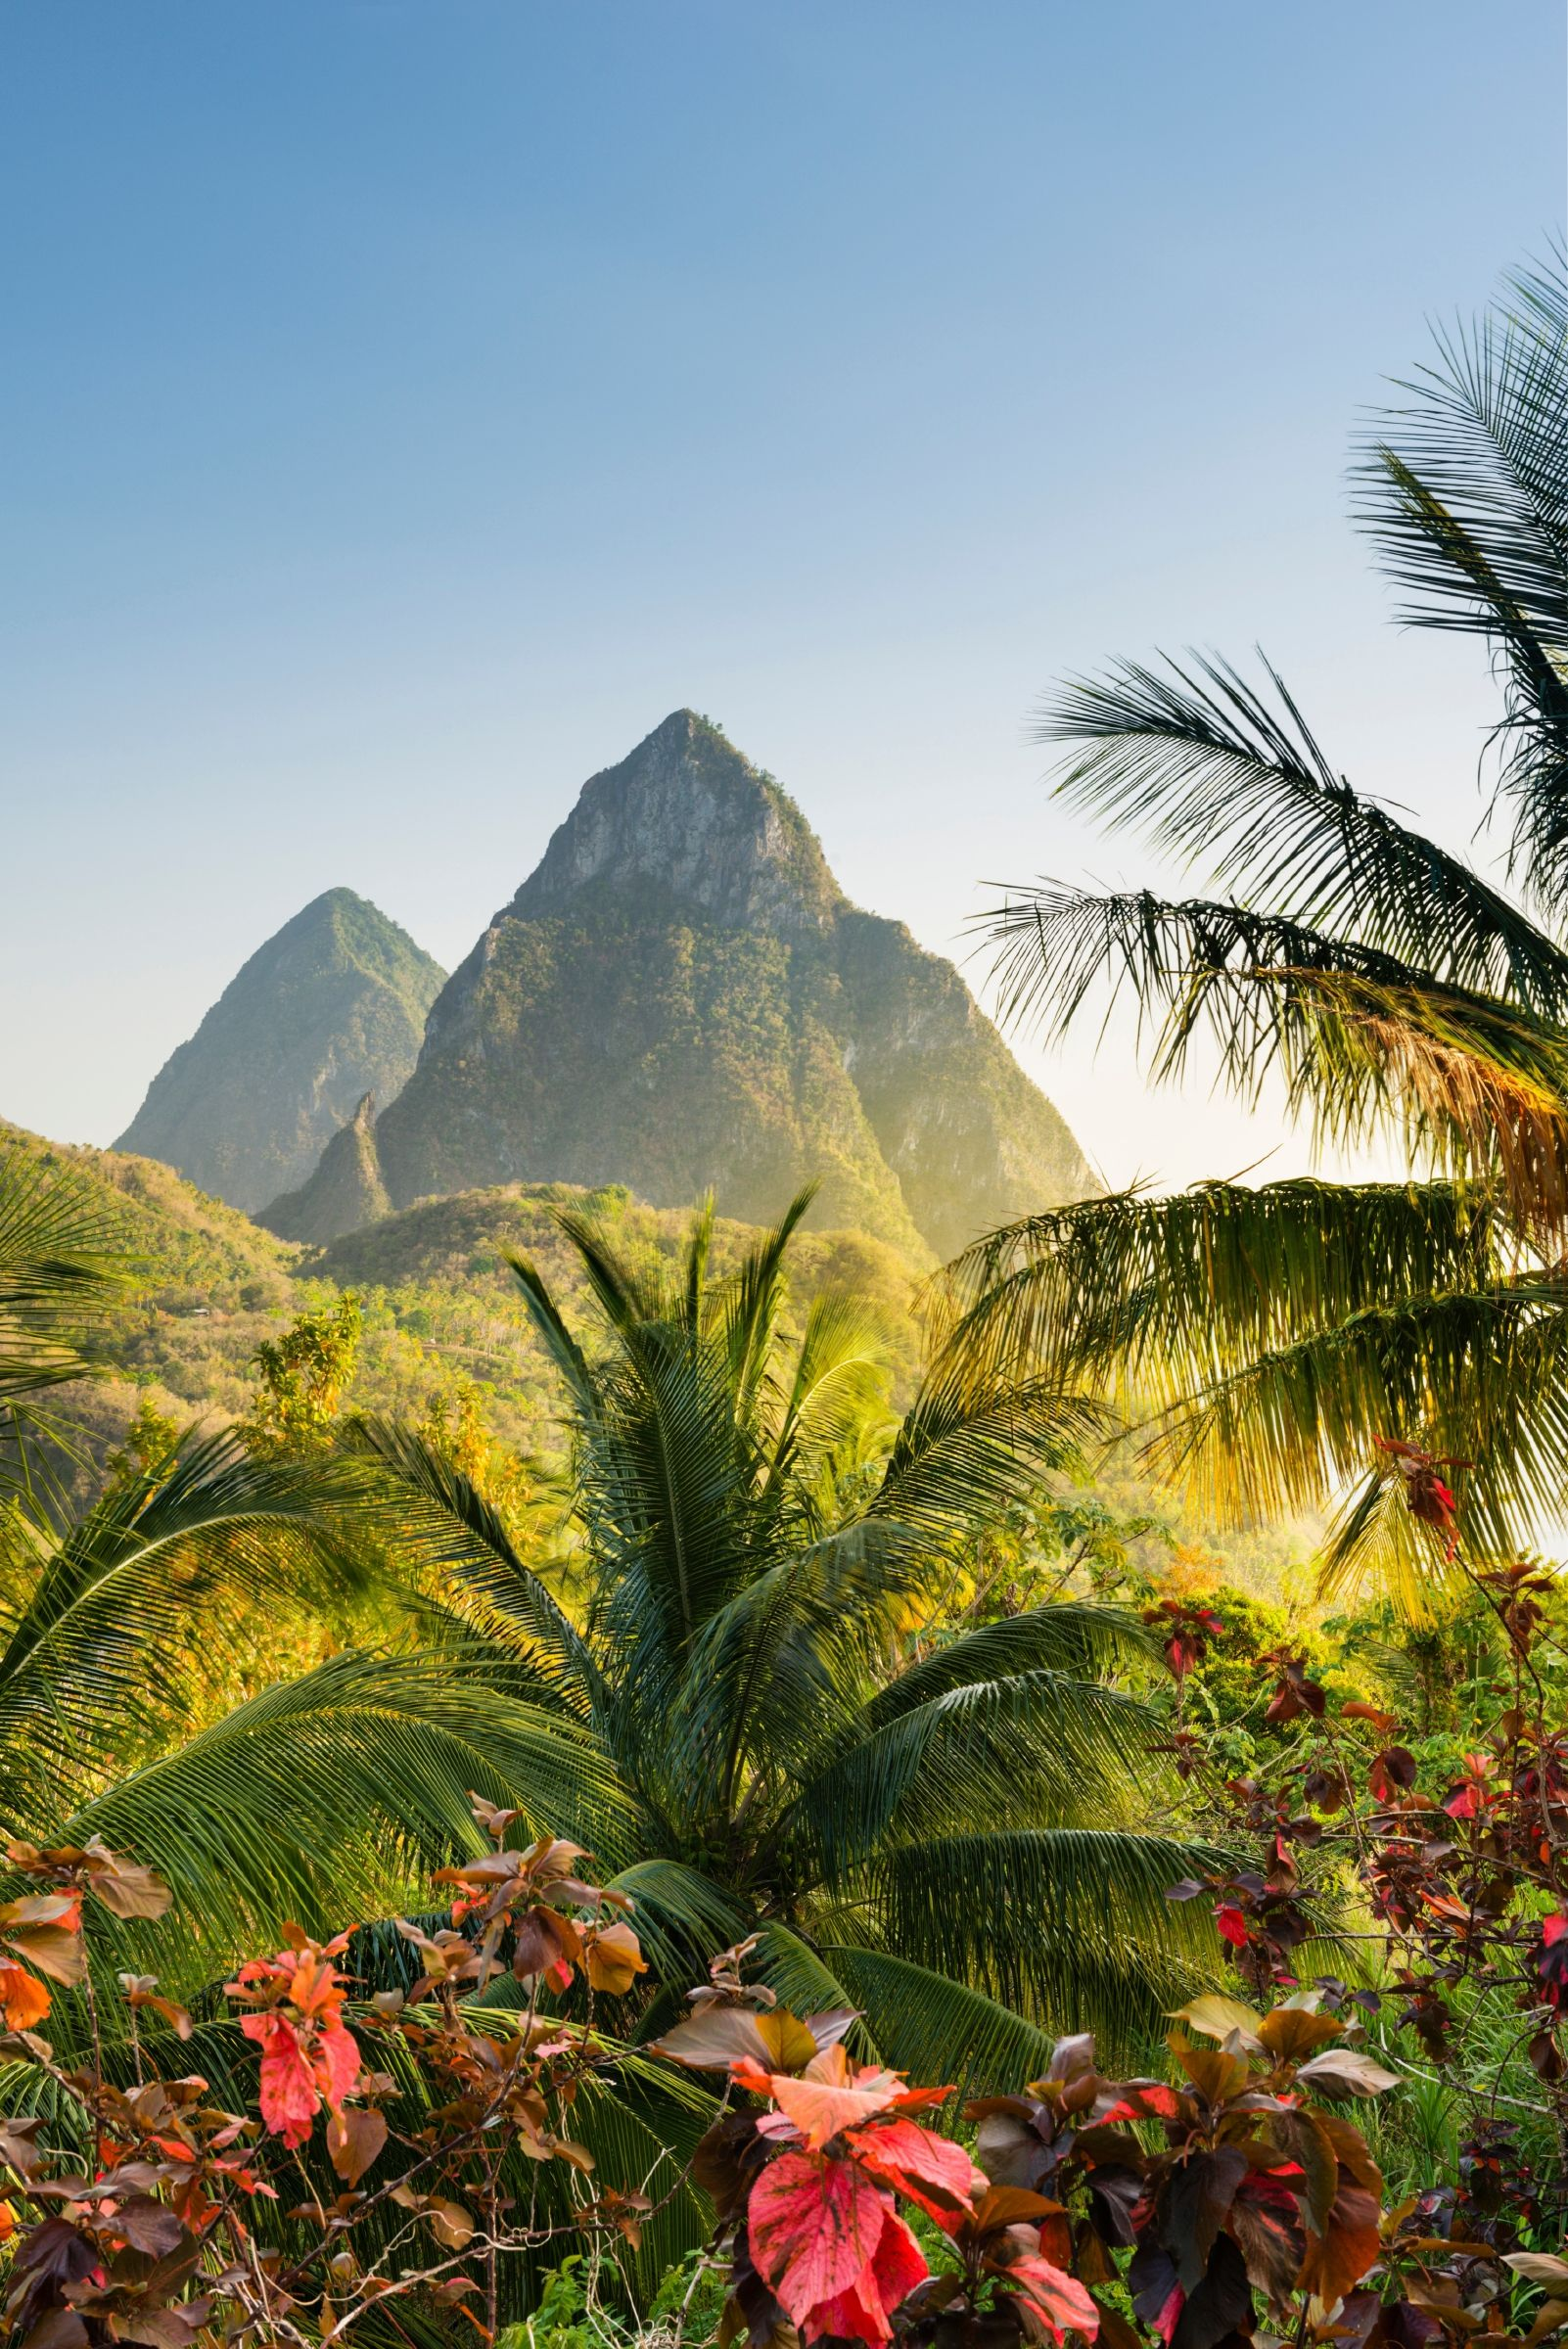 Castries St Lucia What Would You Do With 8 Hours In St Lucia The Towering Twin Peaks Of The Piton Mount Places To Travel Travel Aesthetic St Lucia Travel